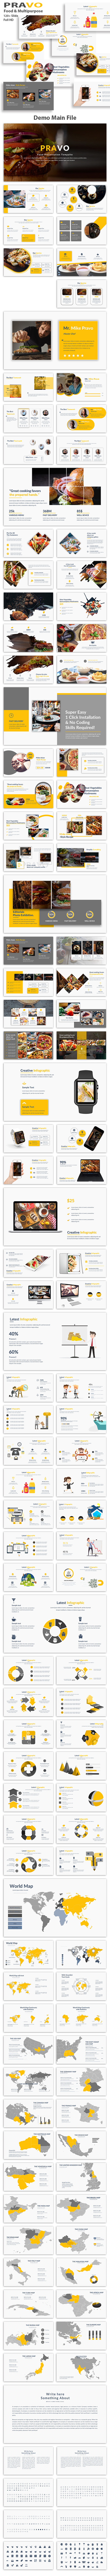 Pravo Food Multipurpose PowerPoint Template - Creative PowerPoint Templates